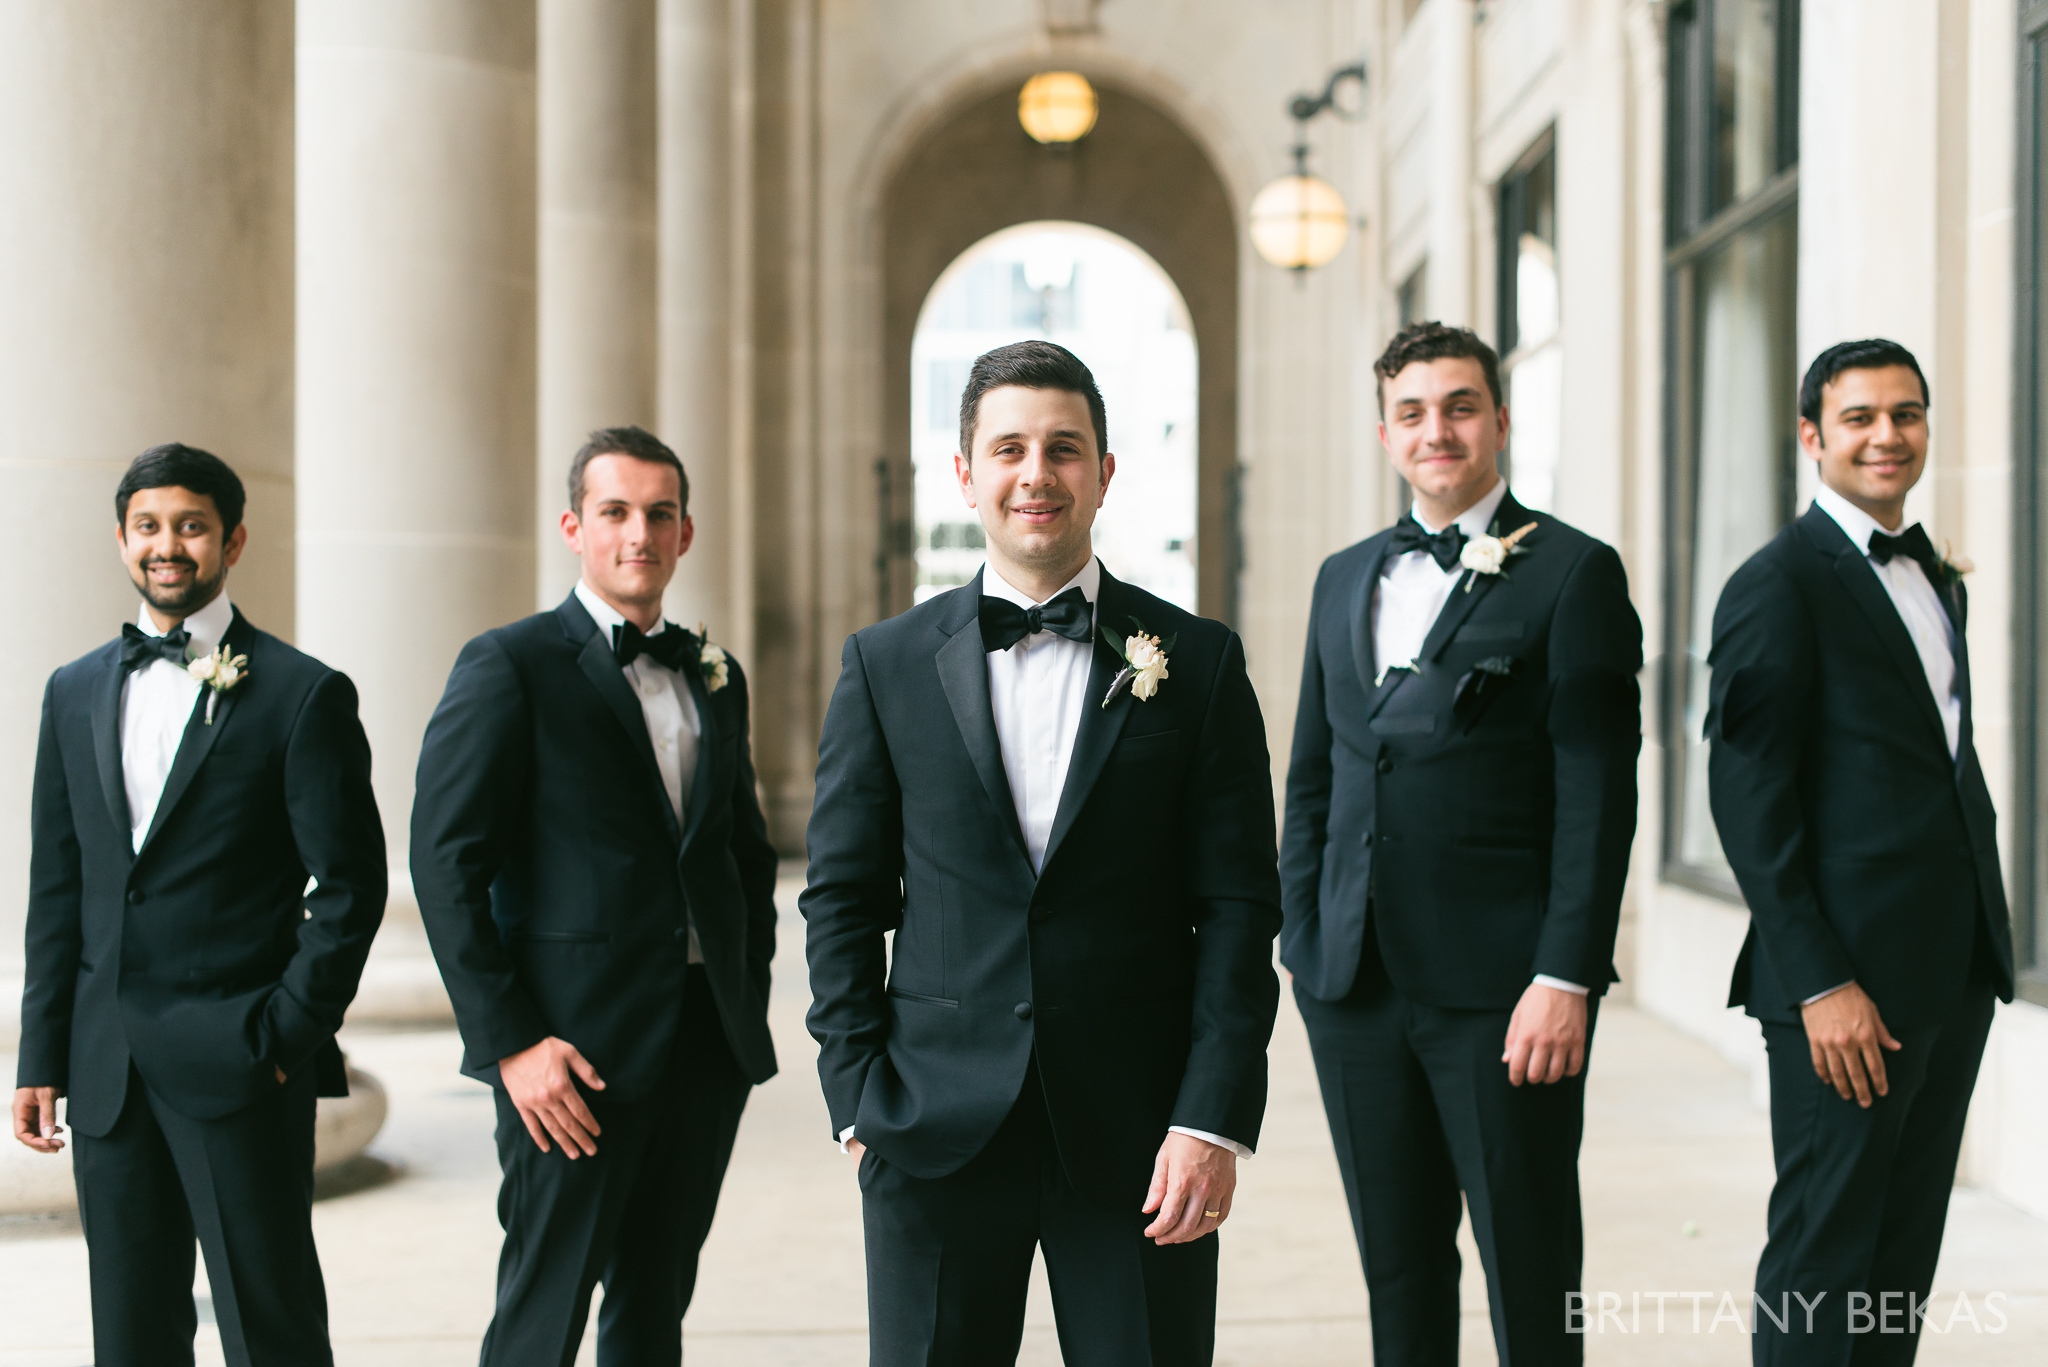 The Murphy Wedding Photos - Brittany Bekas Photography_0020